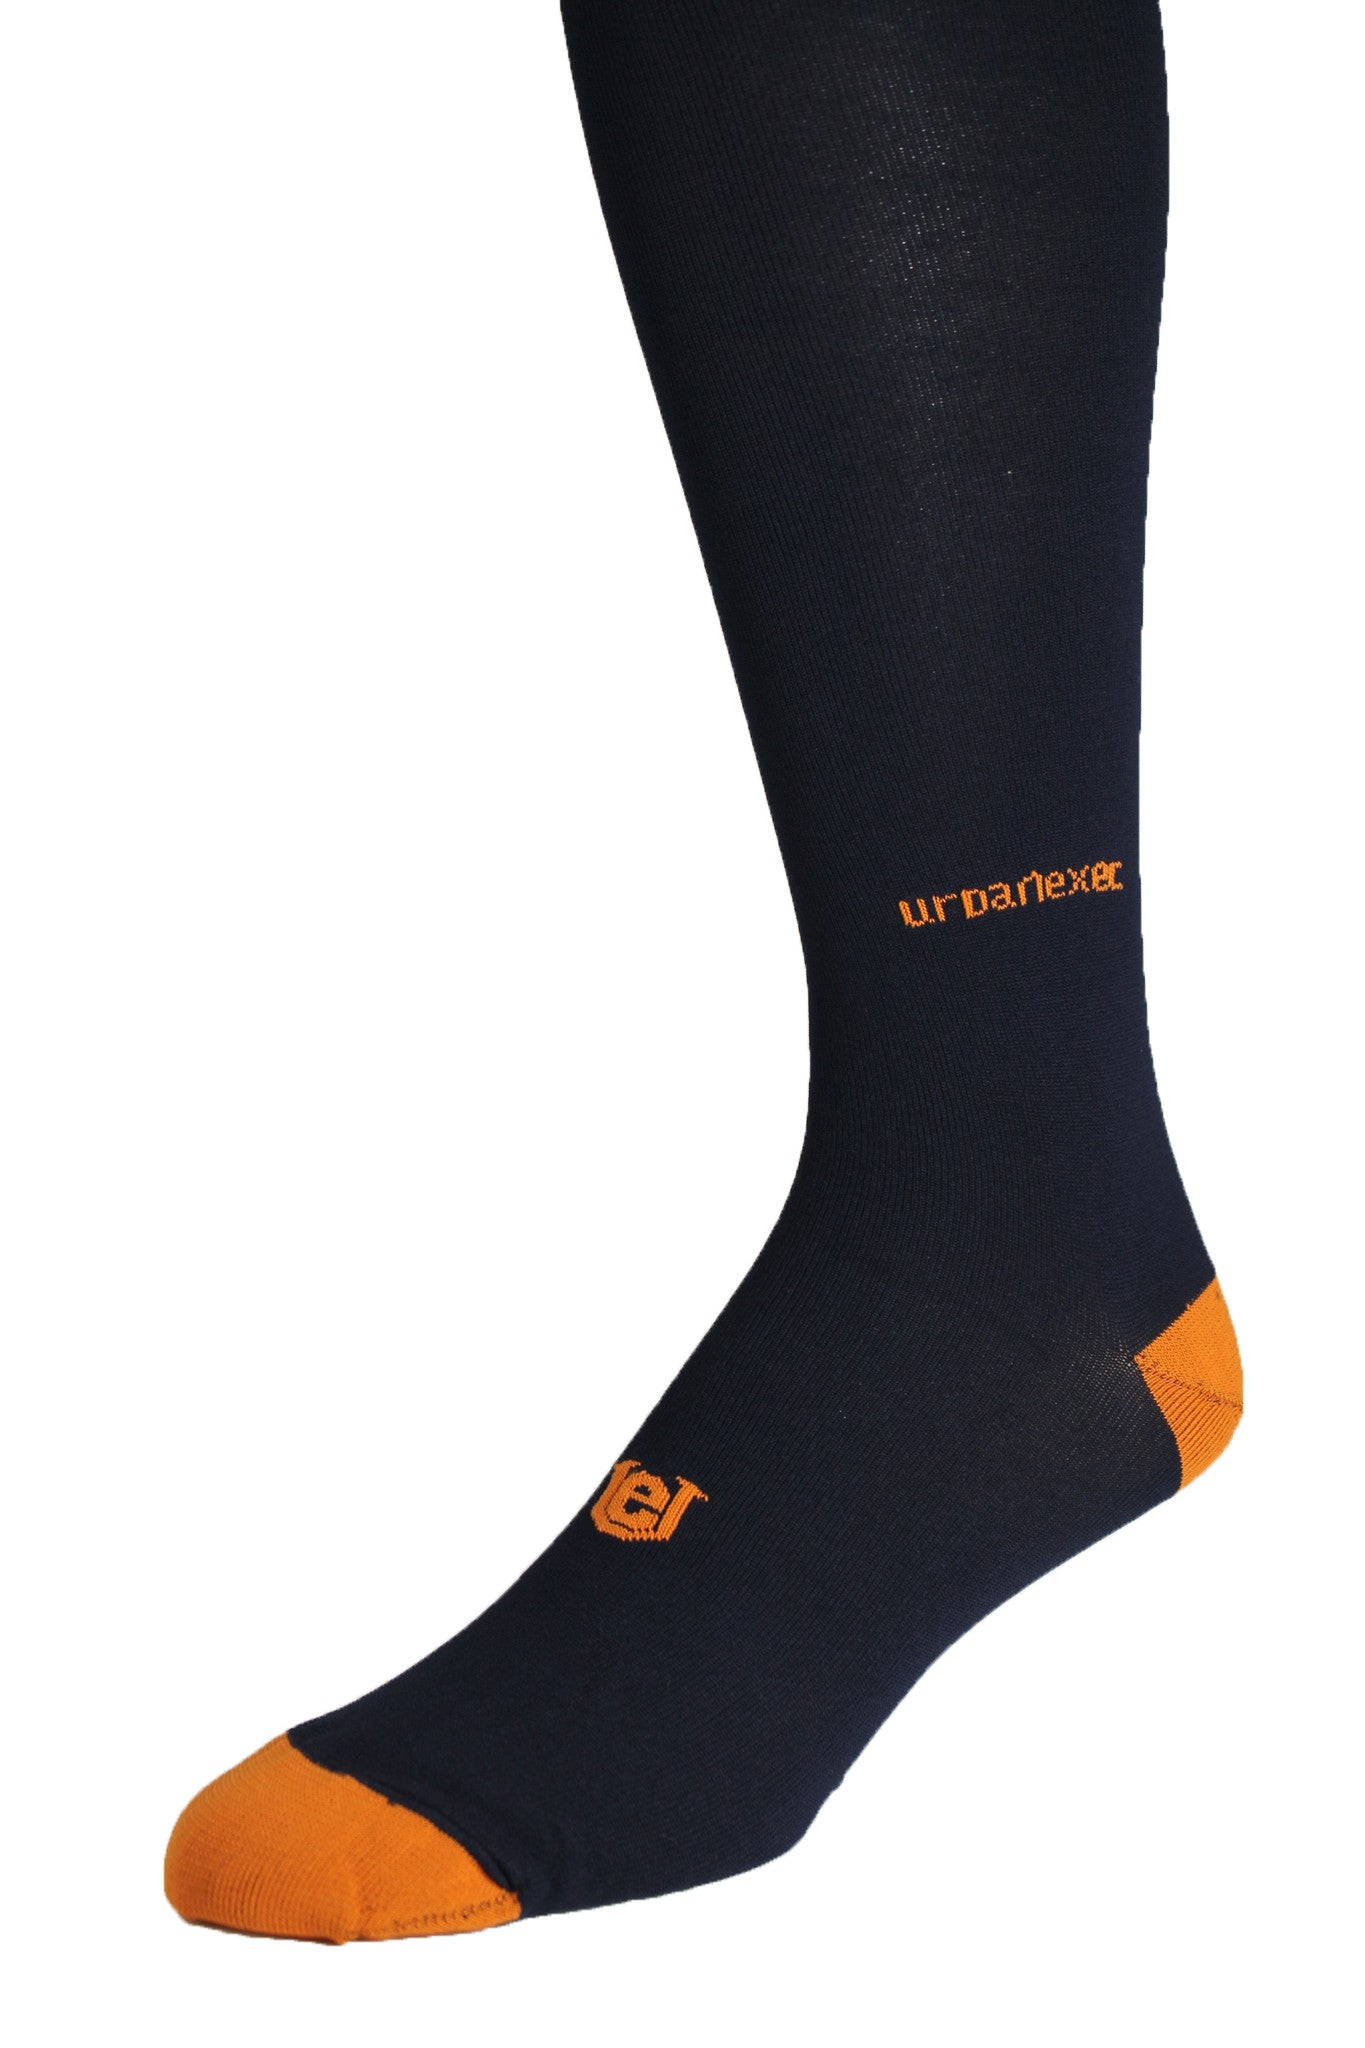 Men's Performance Socks ThinSkin Solid Navy with Orange Tips GameDay